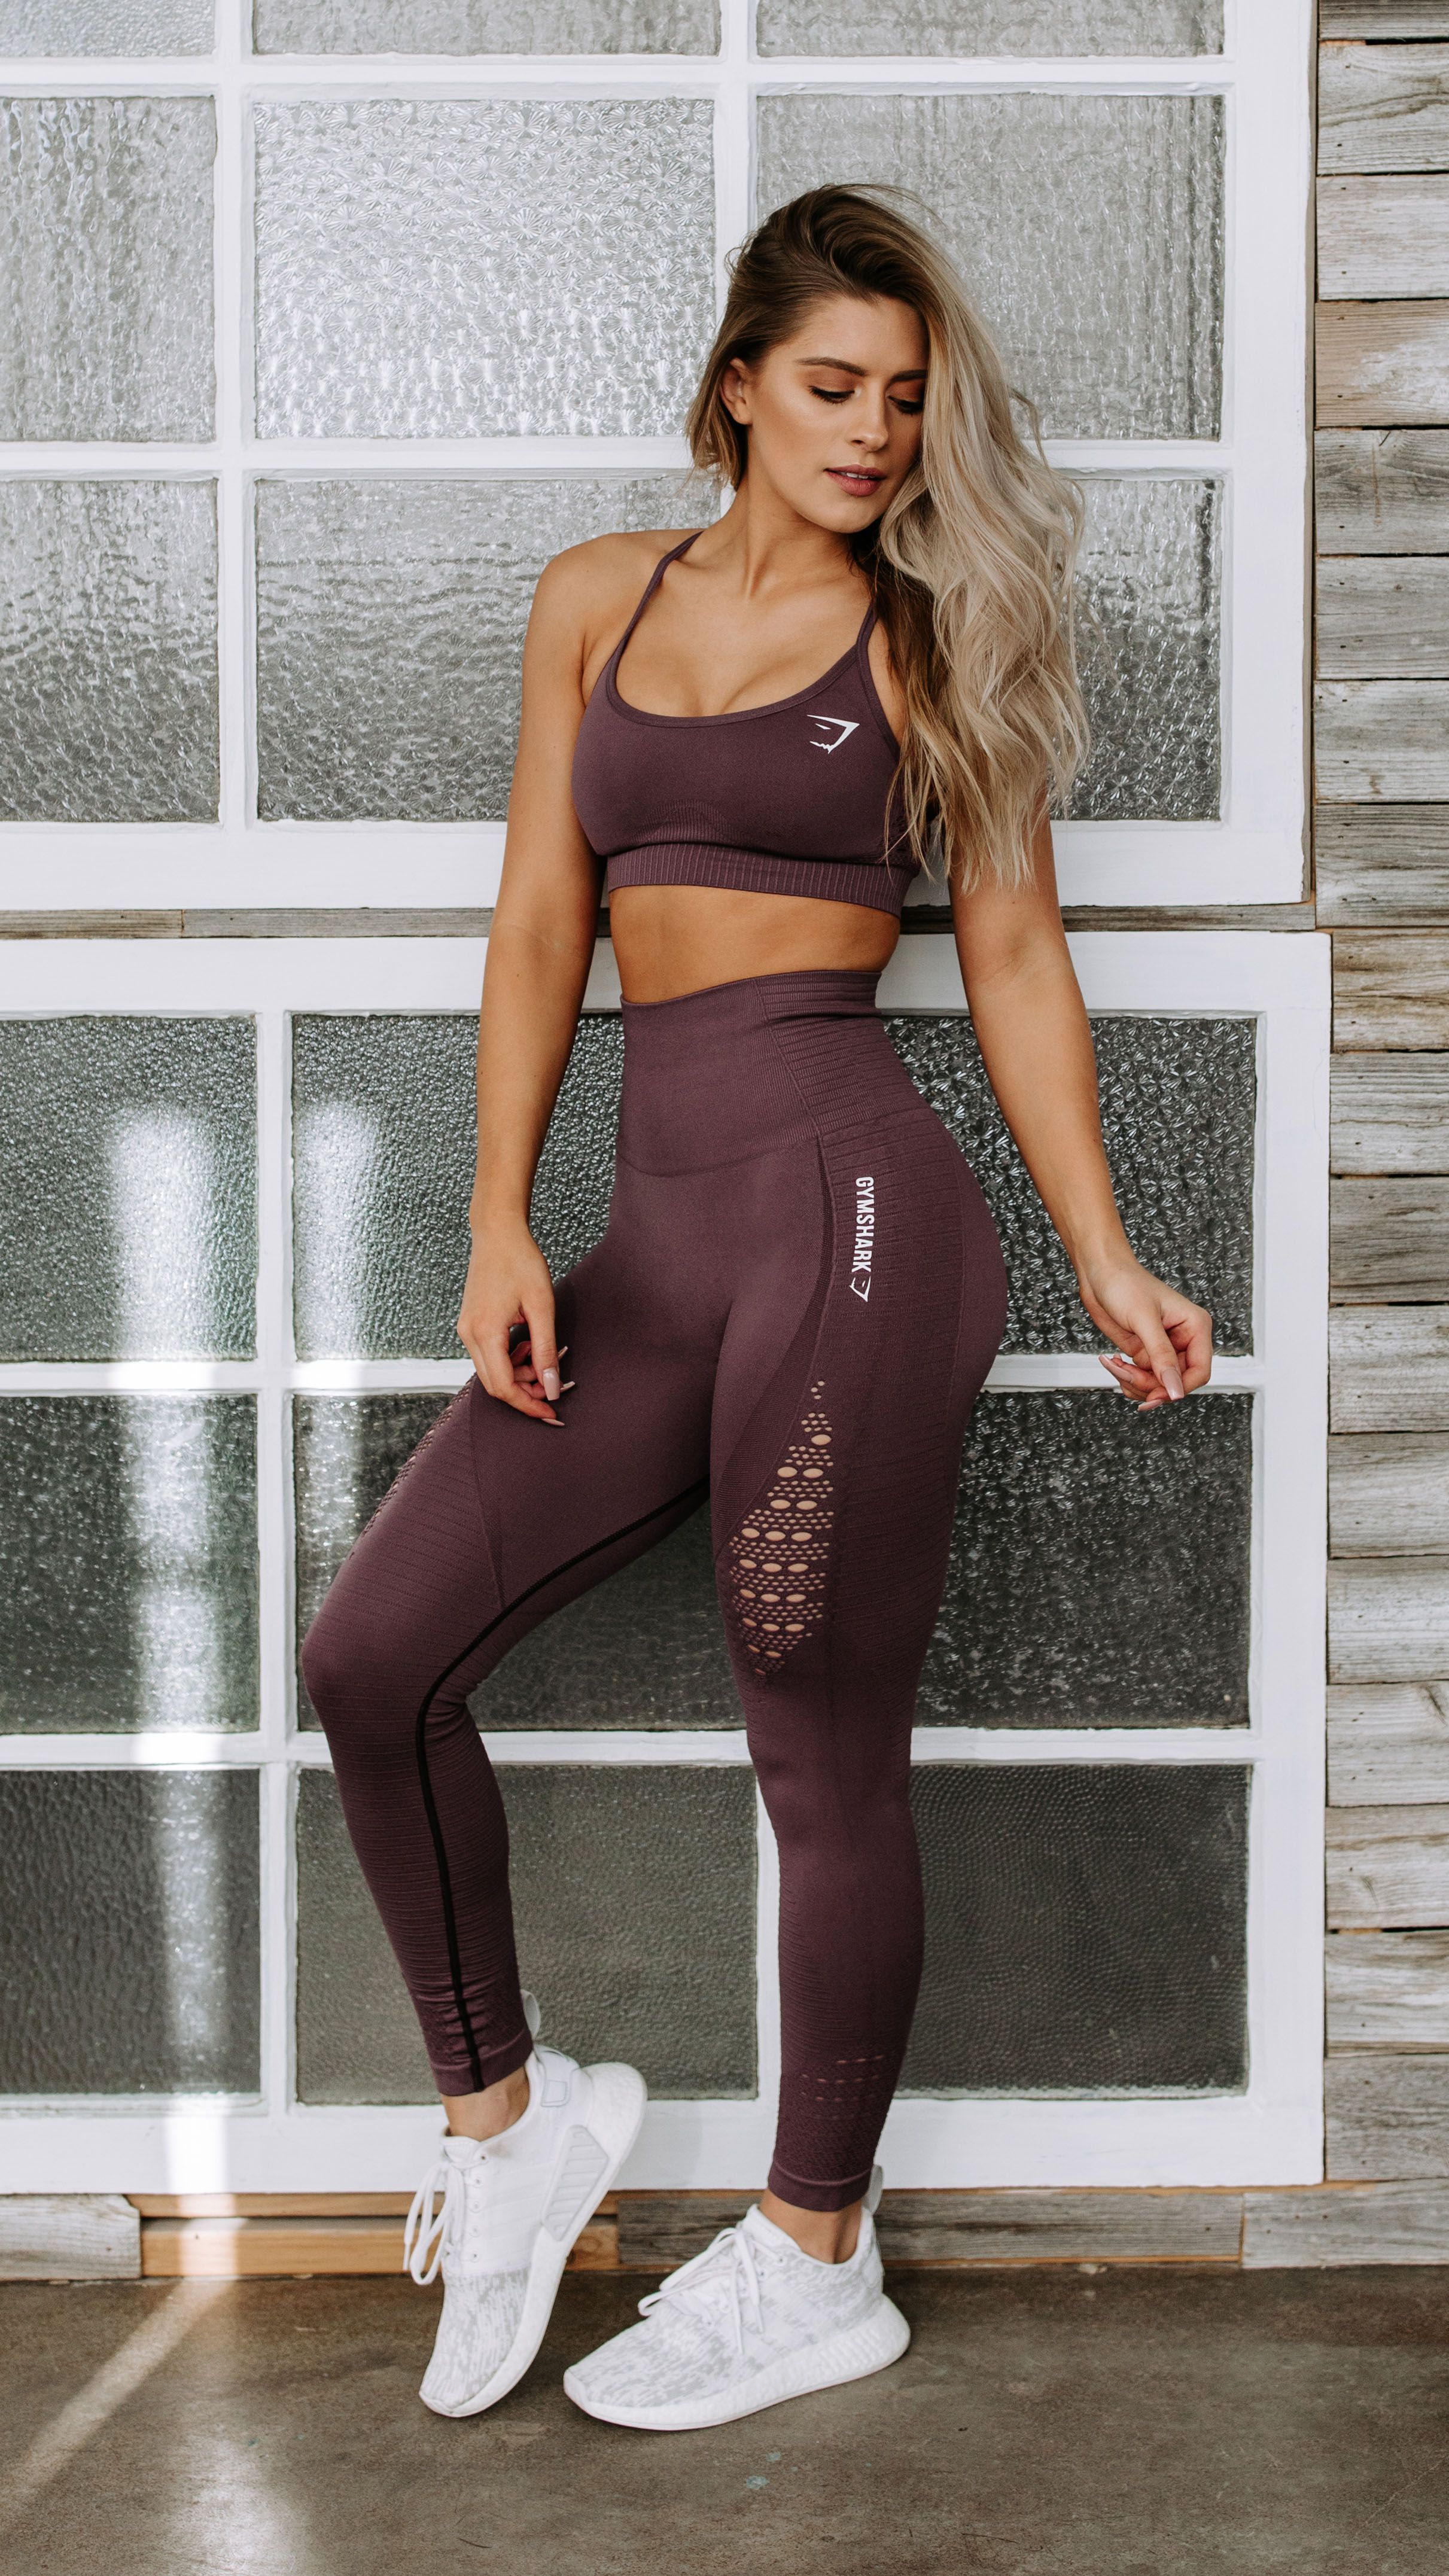 807b208d72ee Workout wardrobe staples. The Energy Seamless collection launches 1st  January at 3pm GMT in four gorgeous colours.  FitnessWear